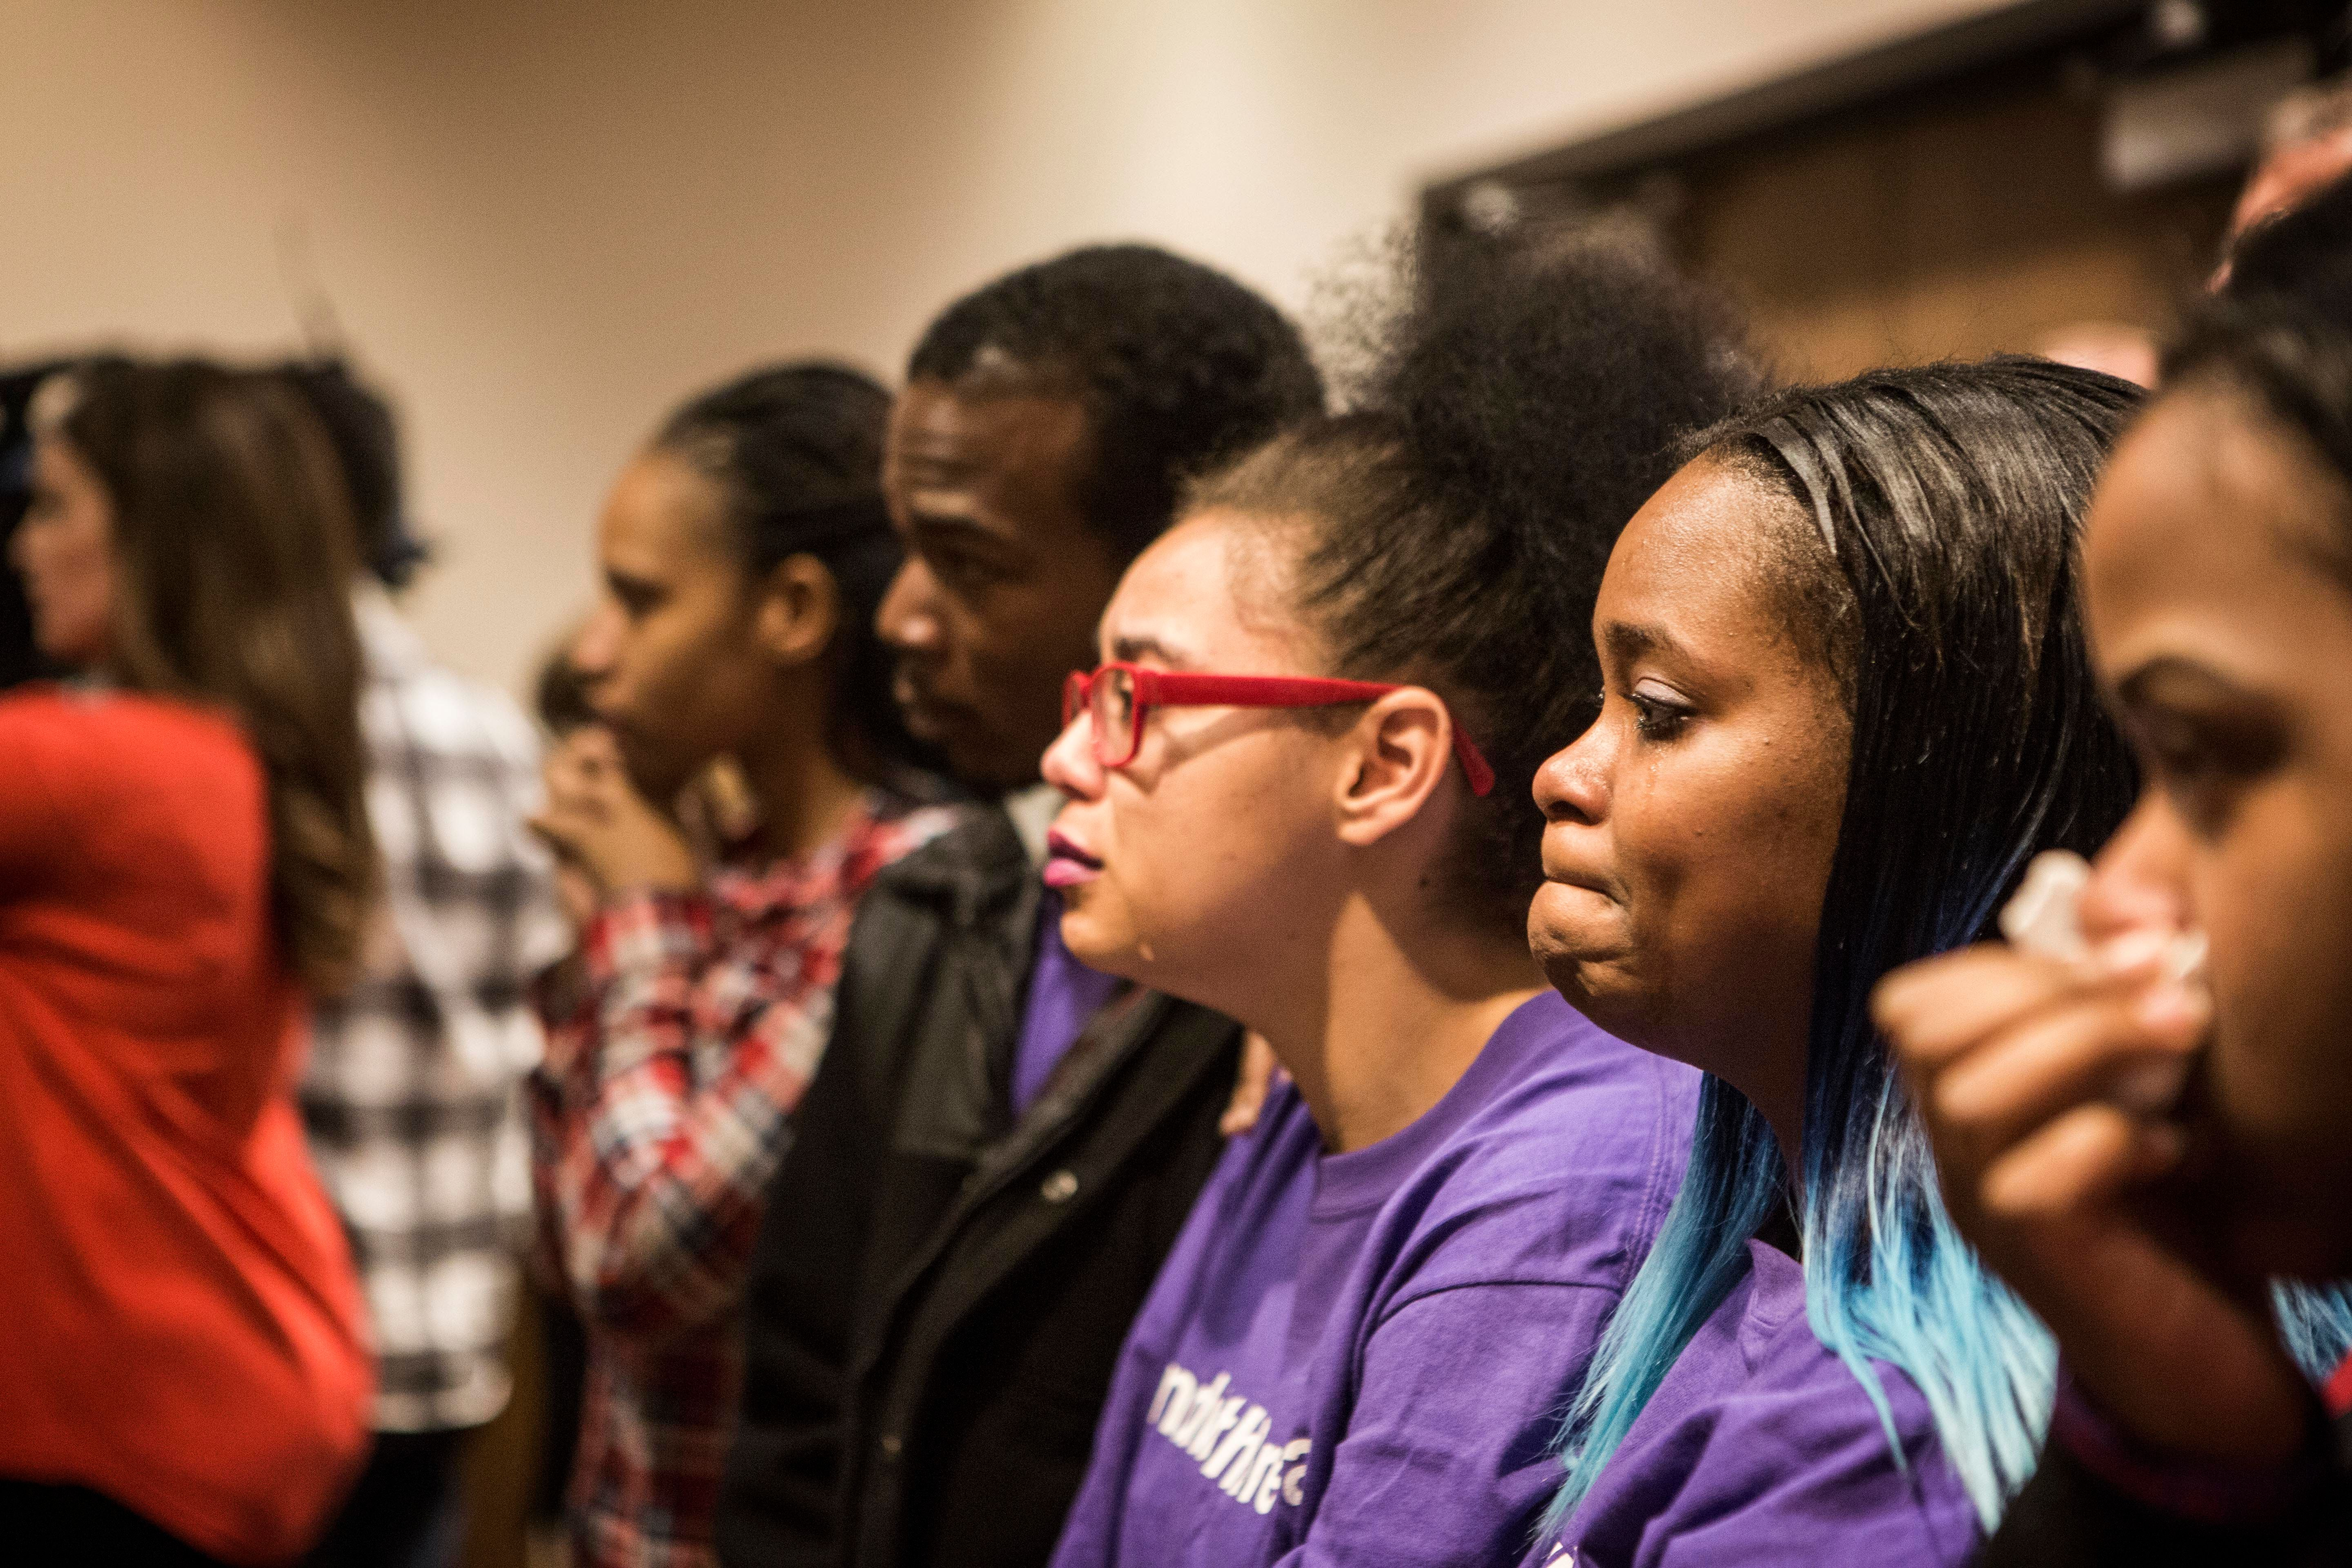 Family and supporters of Bresha Meadows, a teen who killed her allegedly abusive father, listen during a court hear